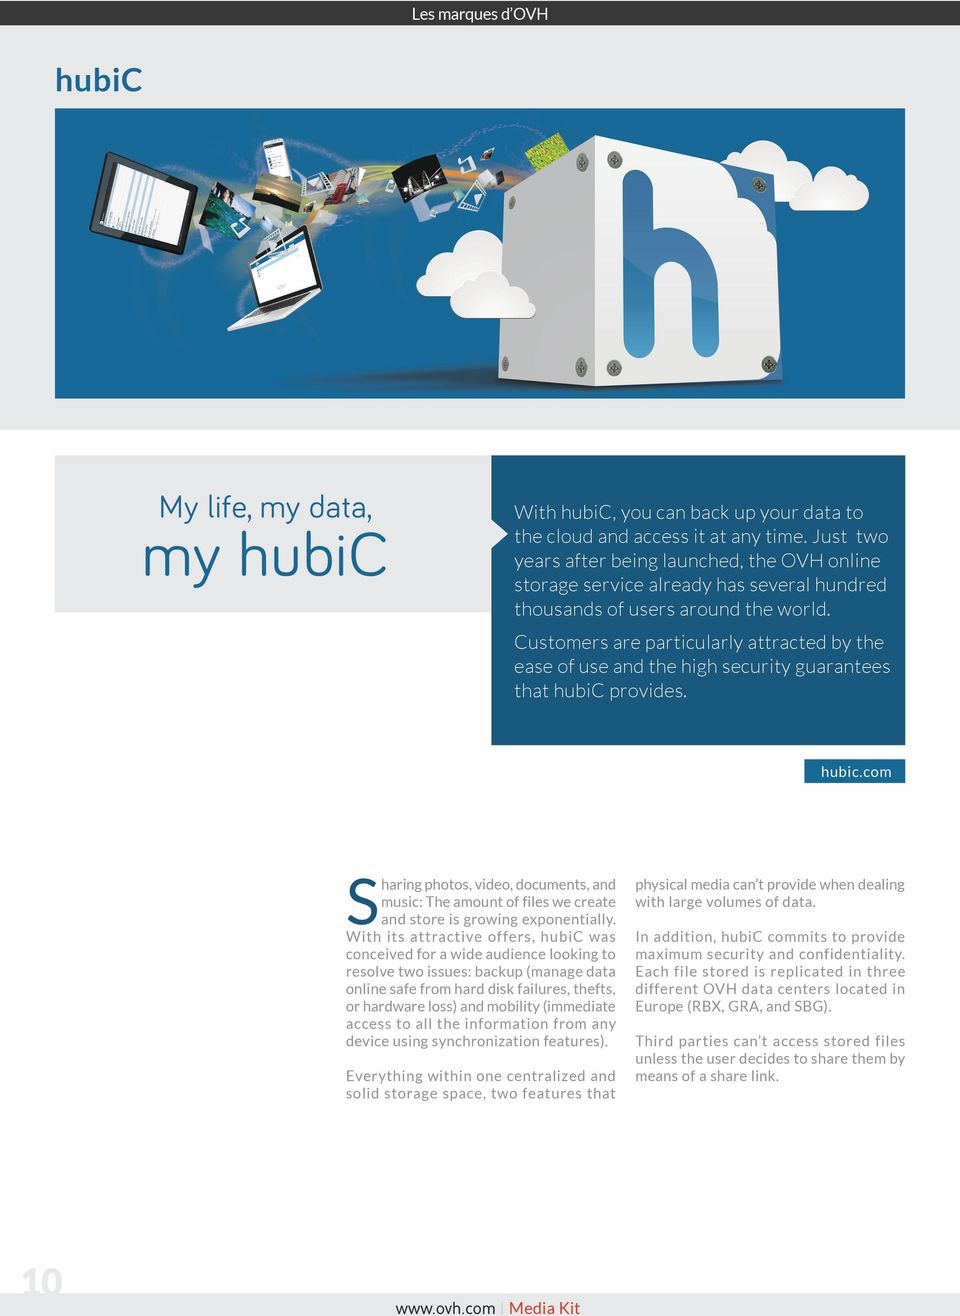 Customers are particularly attracted by the ease of use and the high security guarantees that hubic